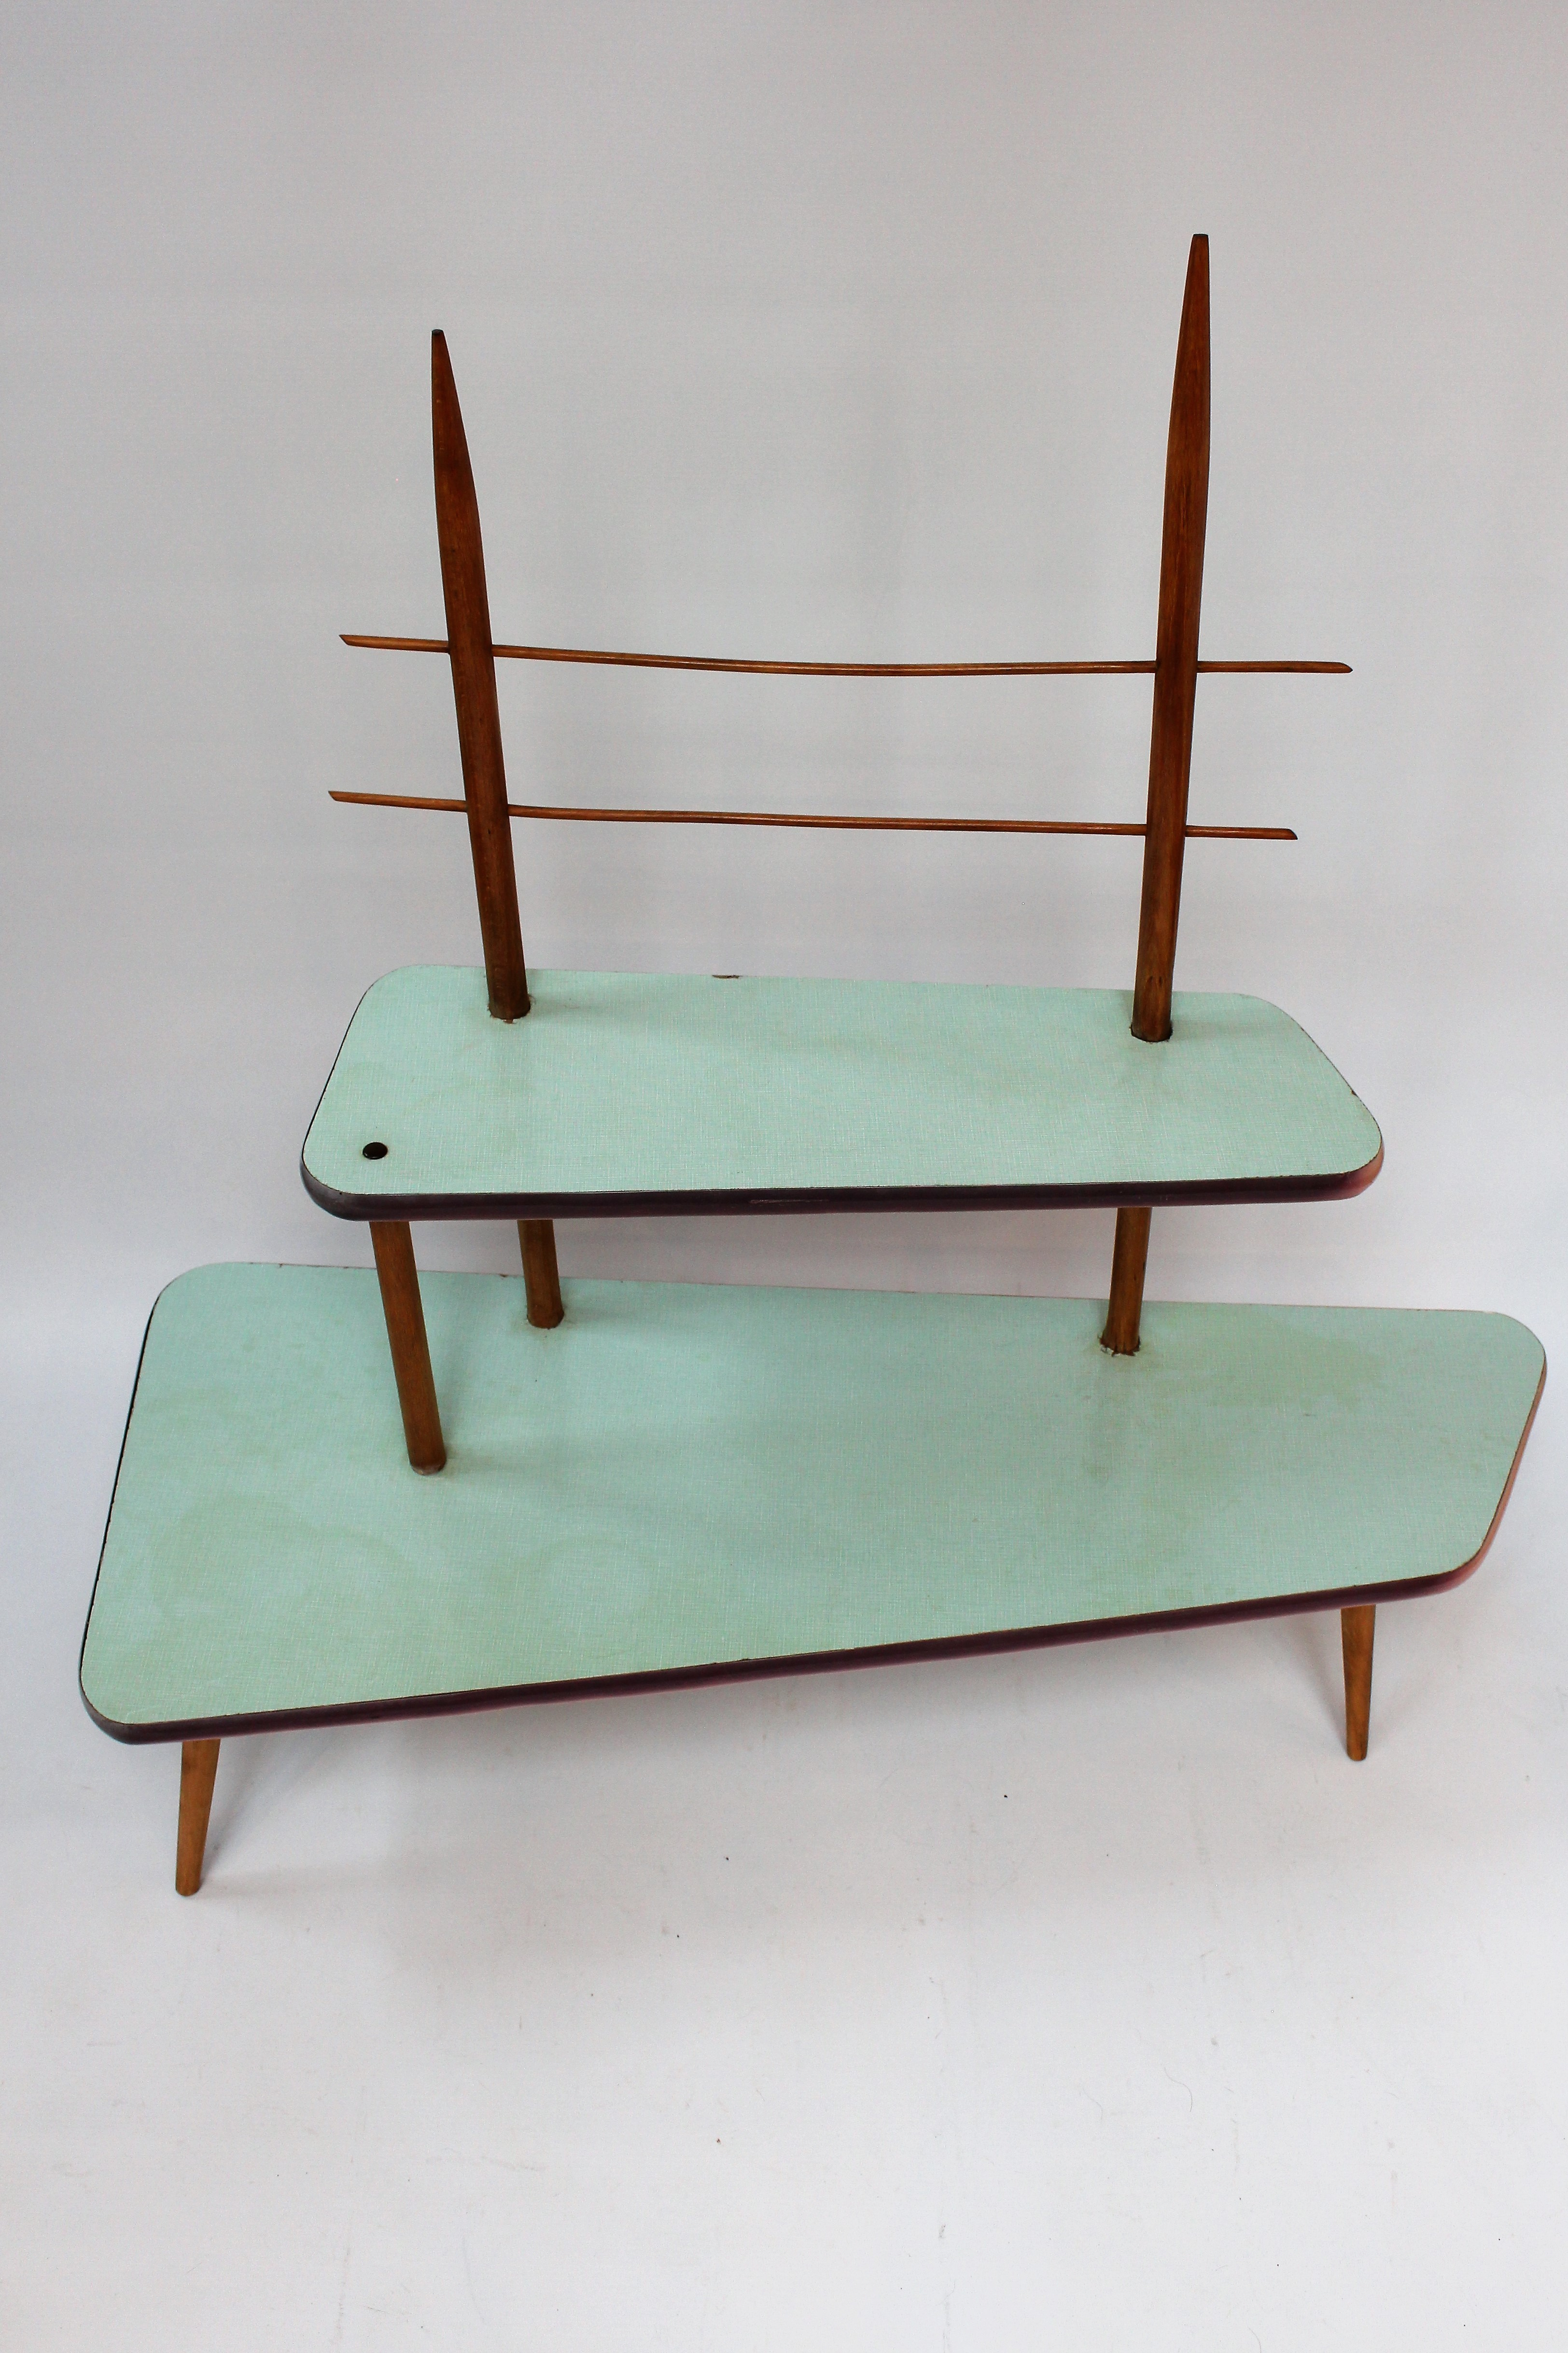 Magnificent Midcentury Modern Danish Vintage Flower Bench Plant Stand Gmtry Best Dining Table And Chair Ideas Images Gmtryco